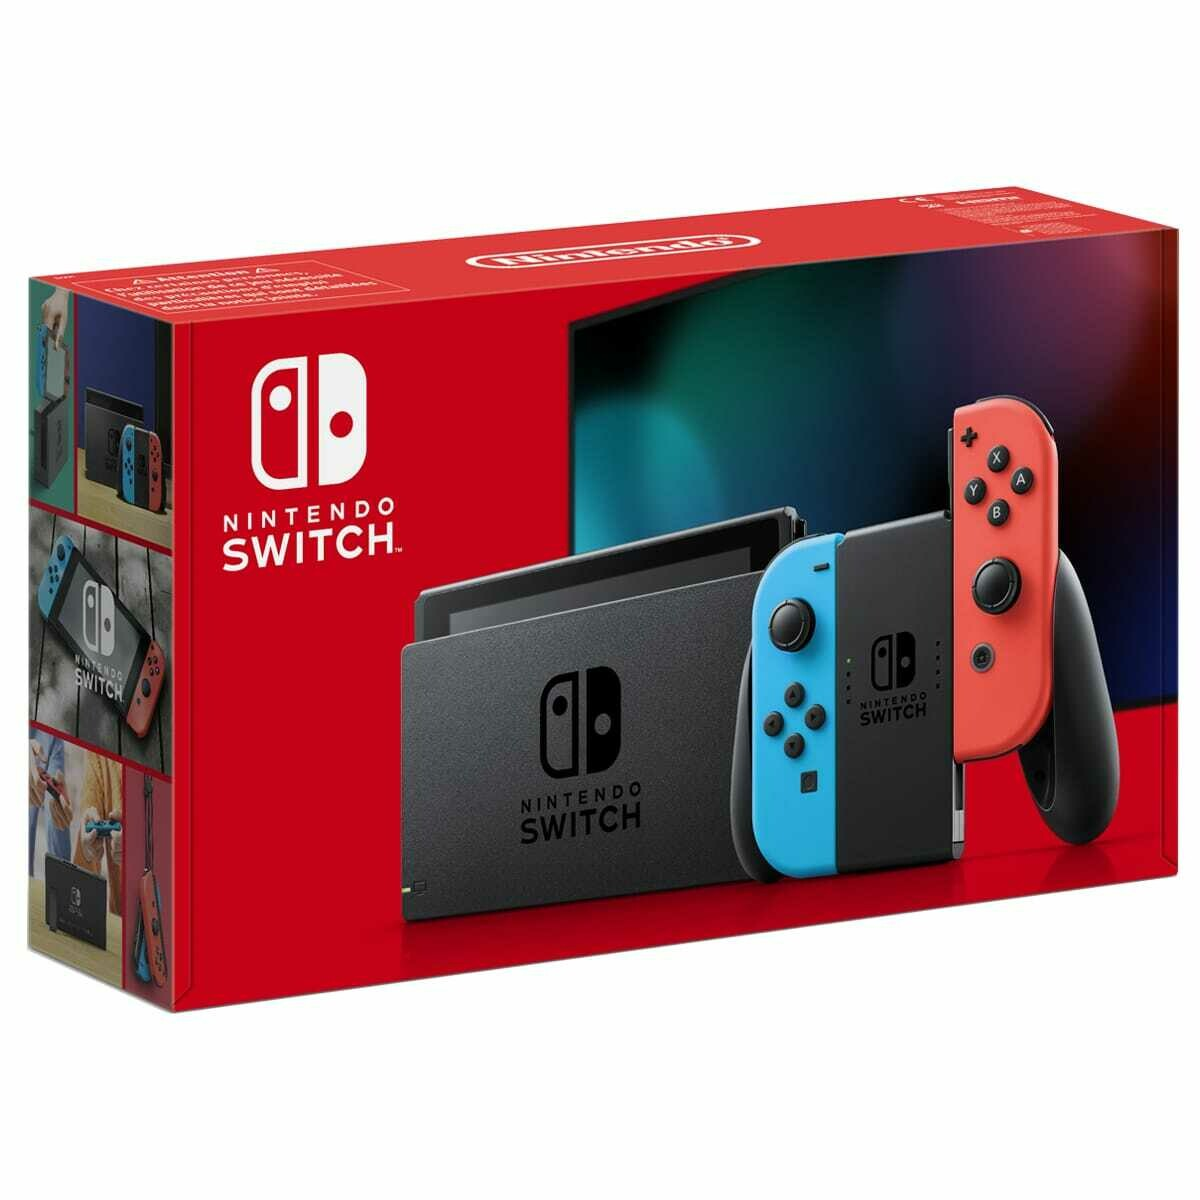 Console Nintendo Switch Bleue / Rouge